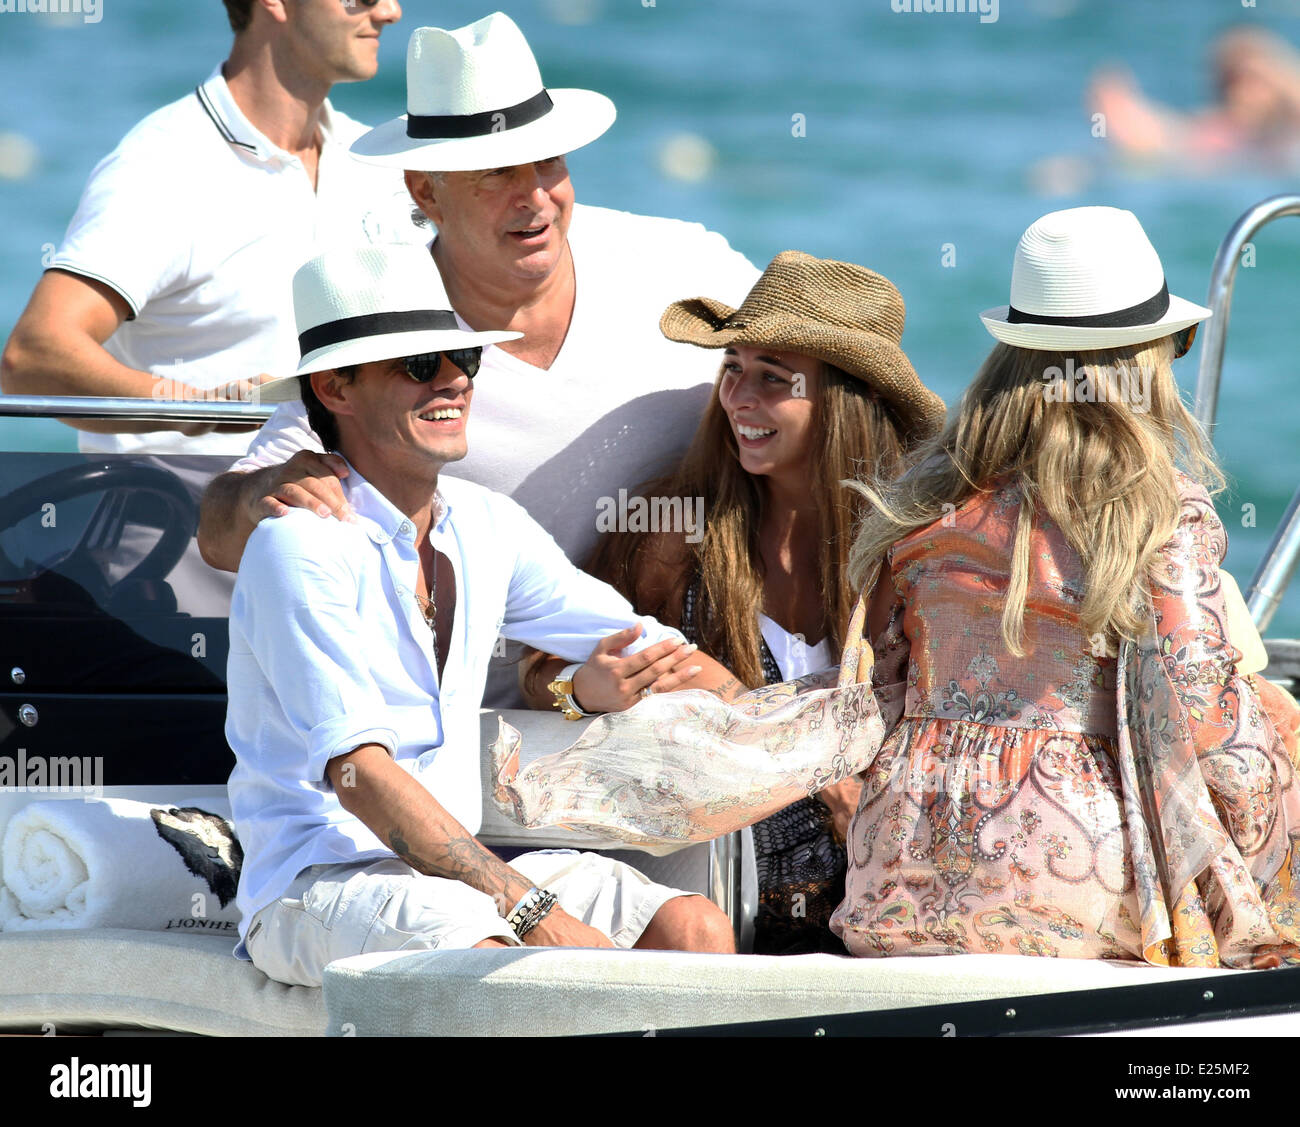 Celebrities at club 55 in st tropez featuring chloe green marc stock photo royalty free image - Club 55 saint tropez ...